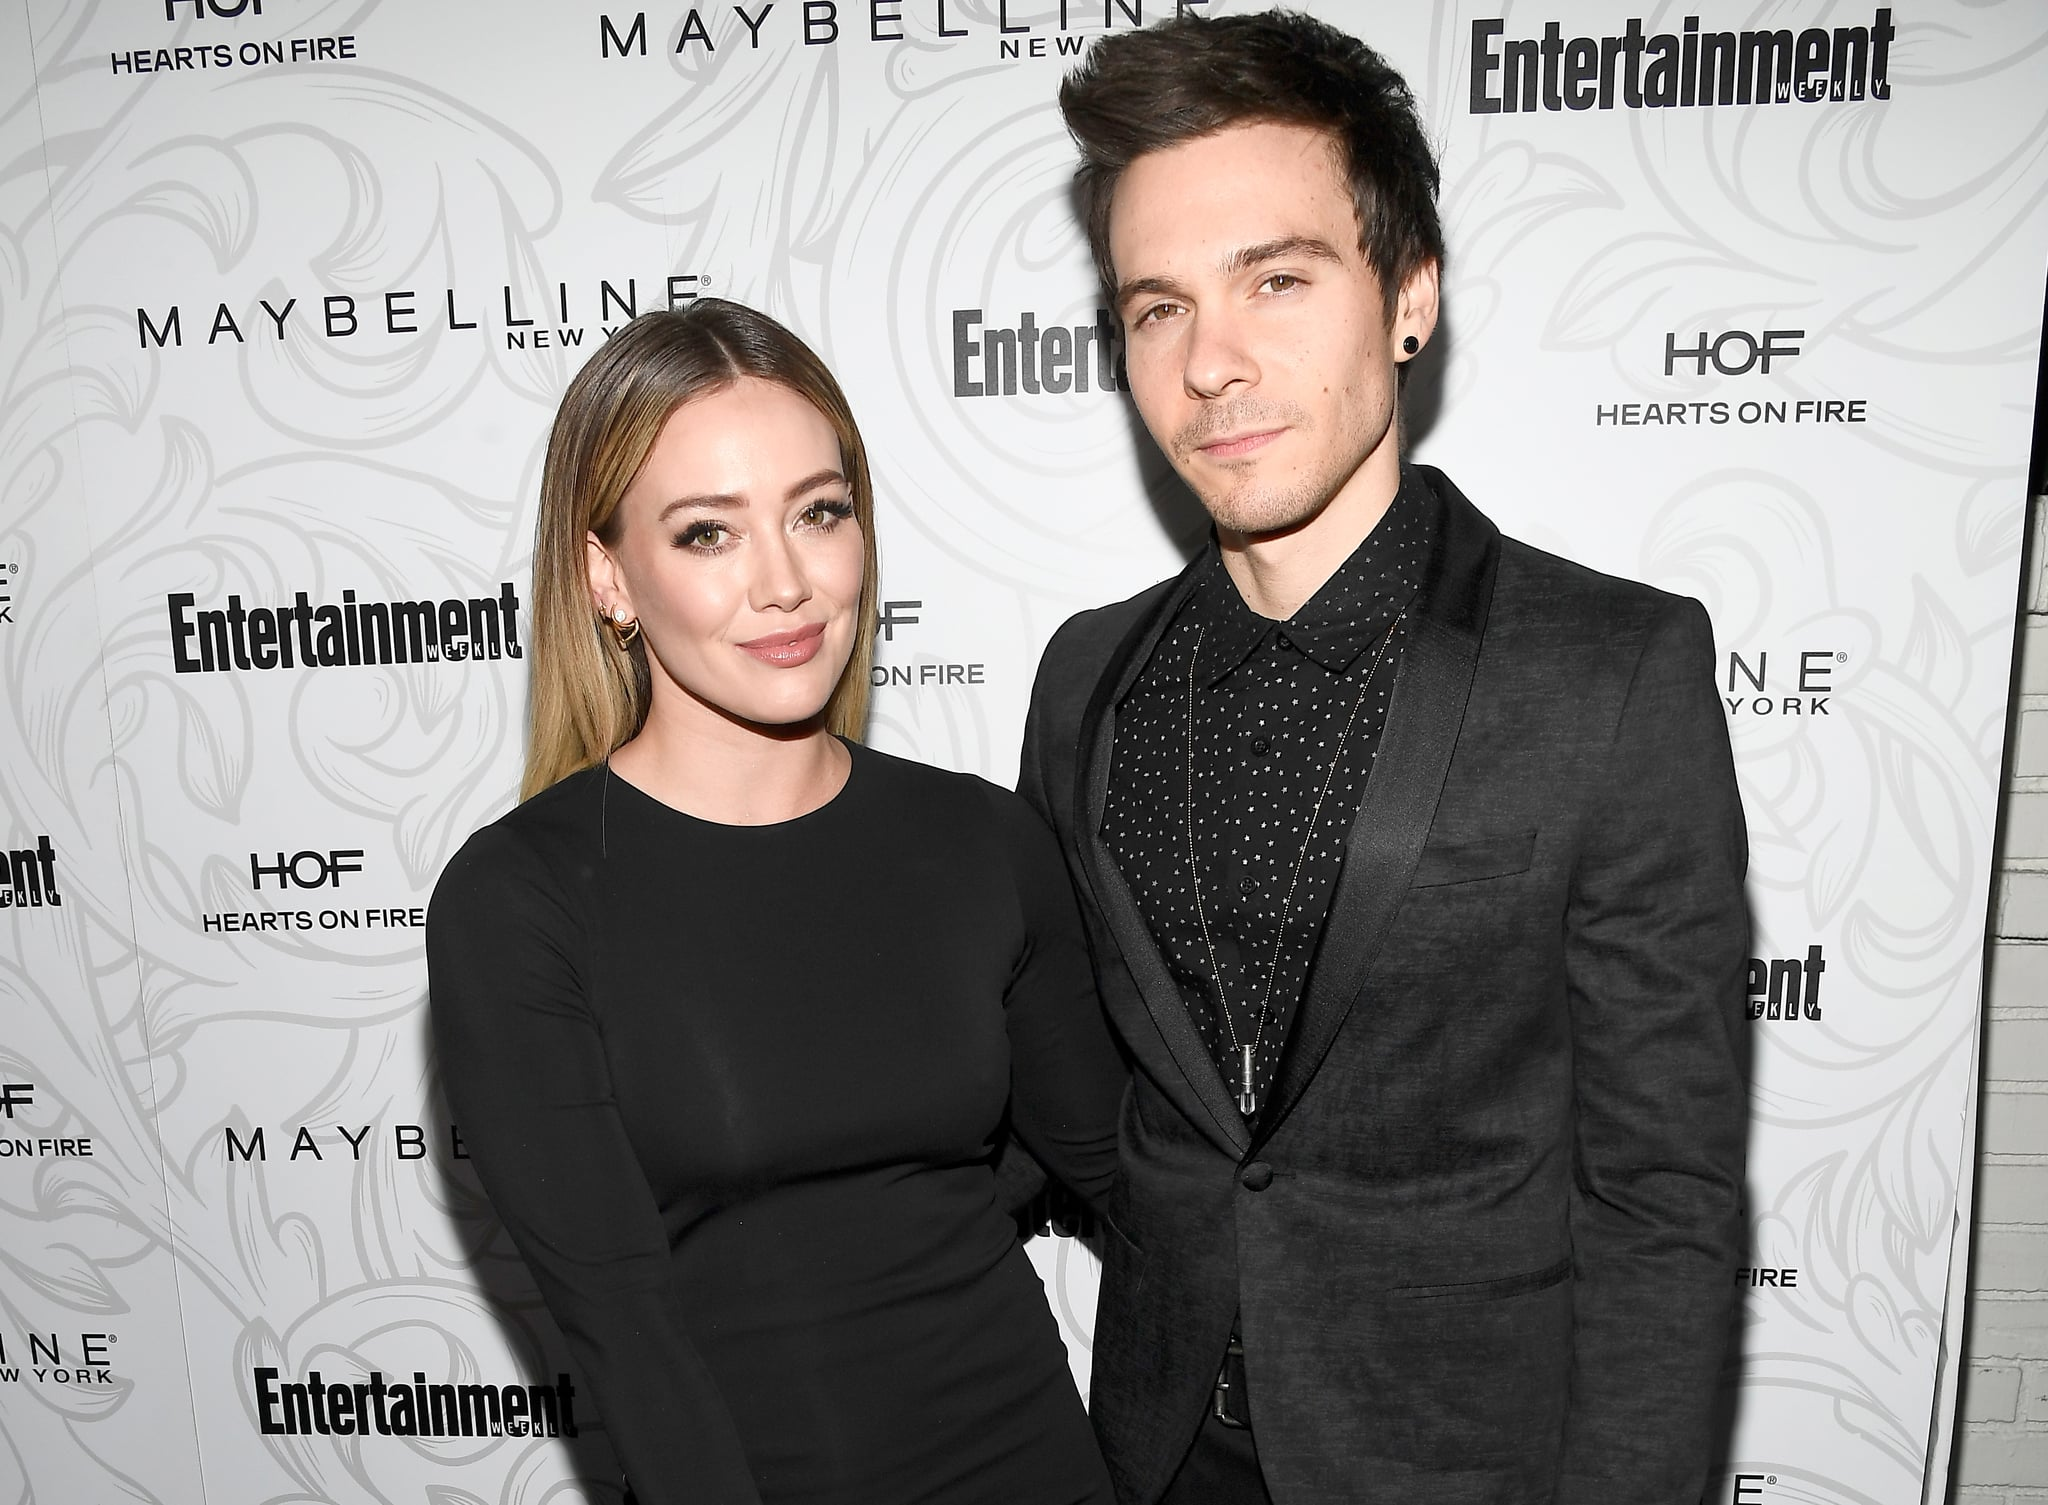 Watch What Hilary Duff and Matthew Komas Body Language Says About Their Relationship video